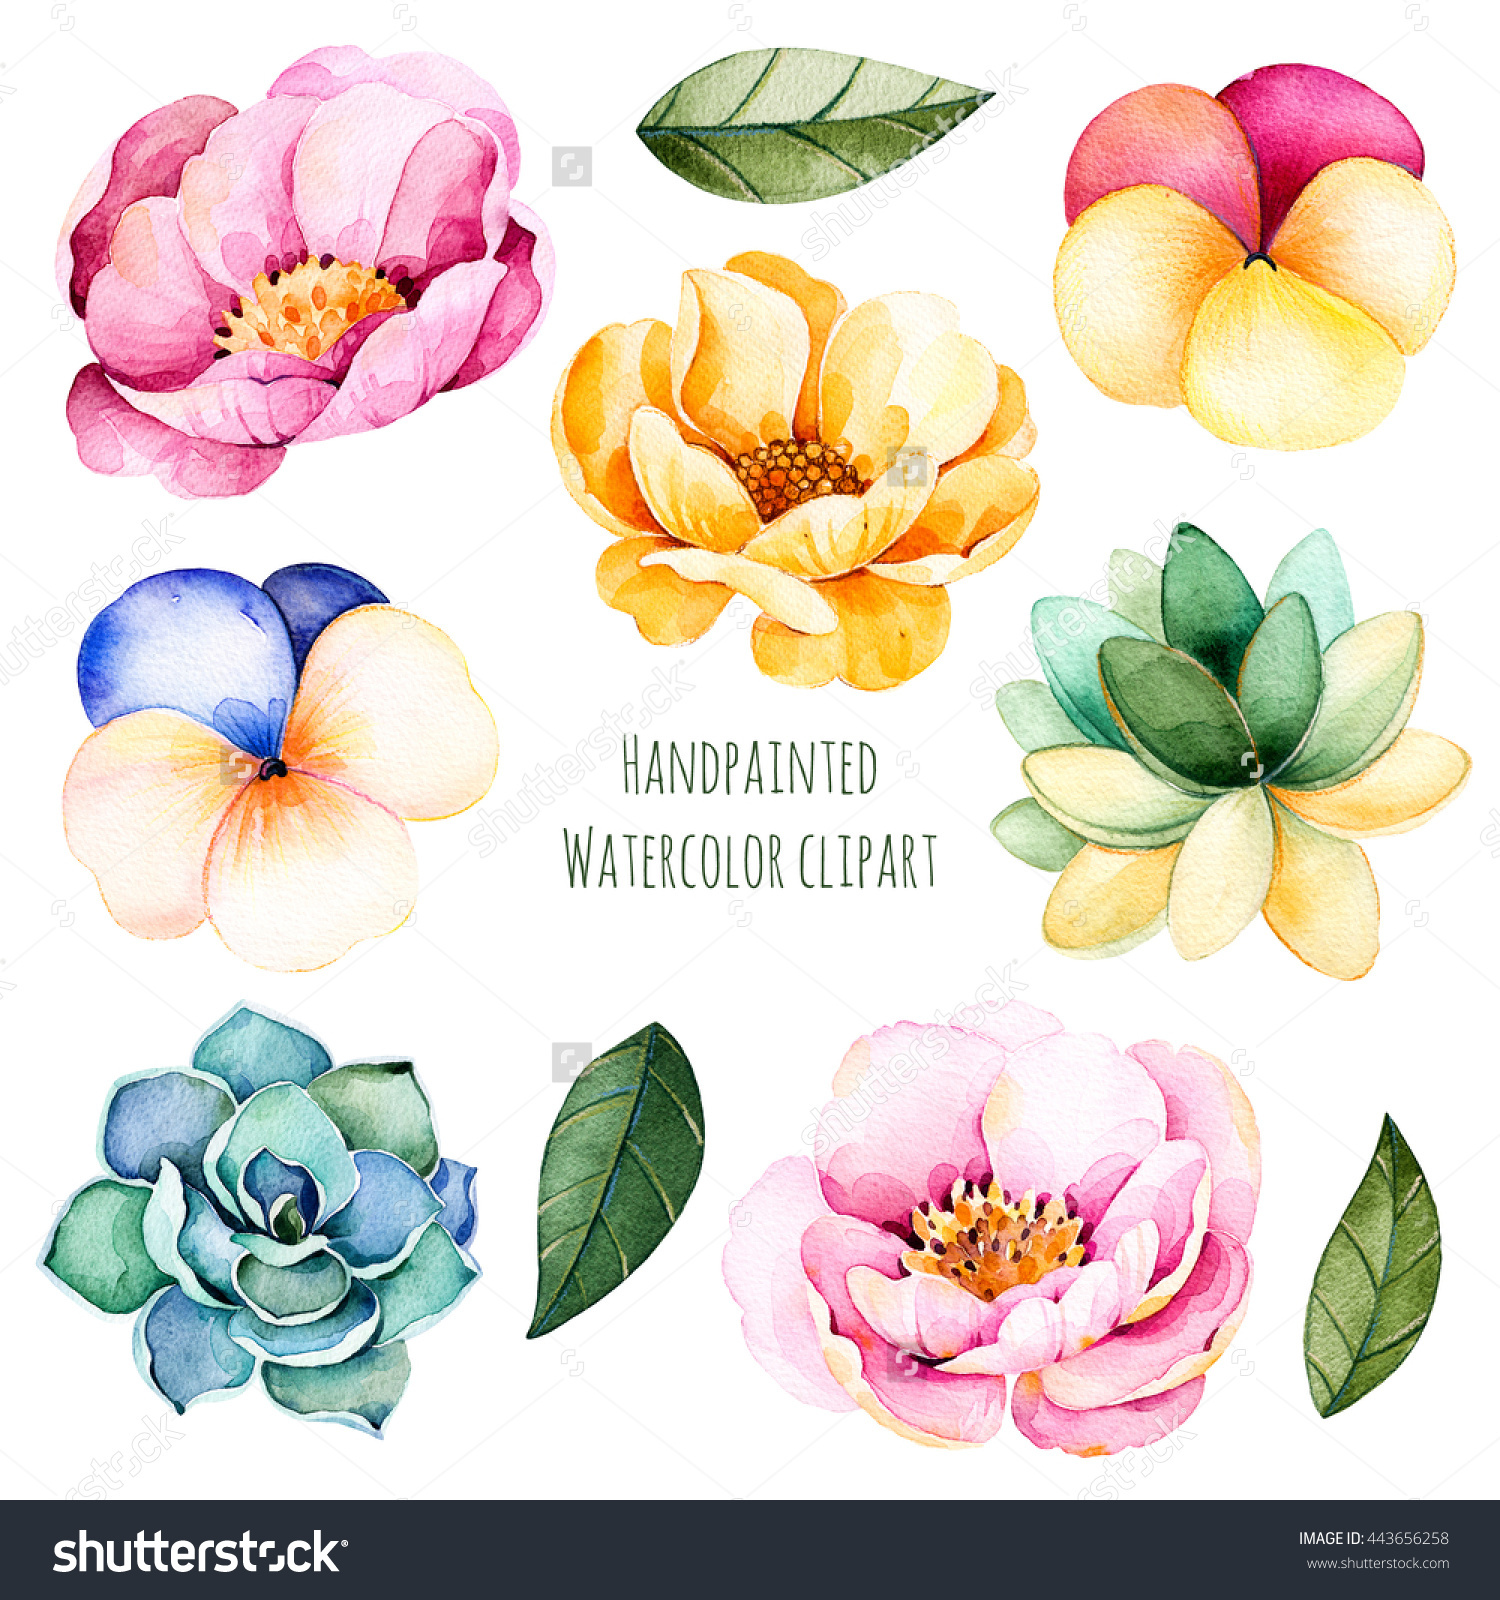 Handpainted Watercolor Flowers Leaves10 Watercolor Clipart Stock.